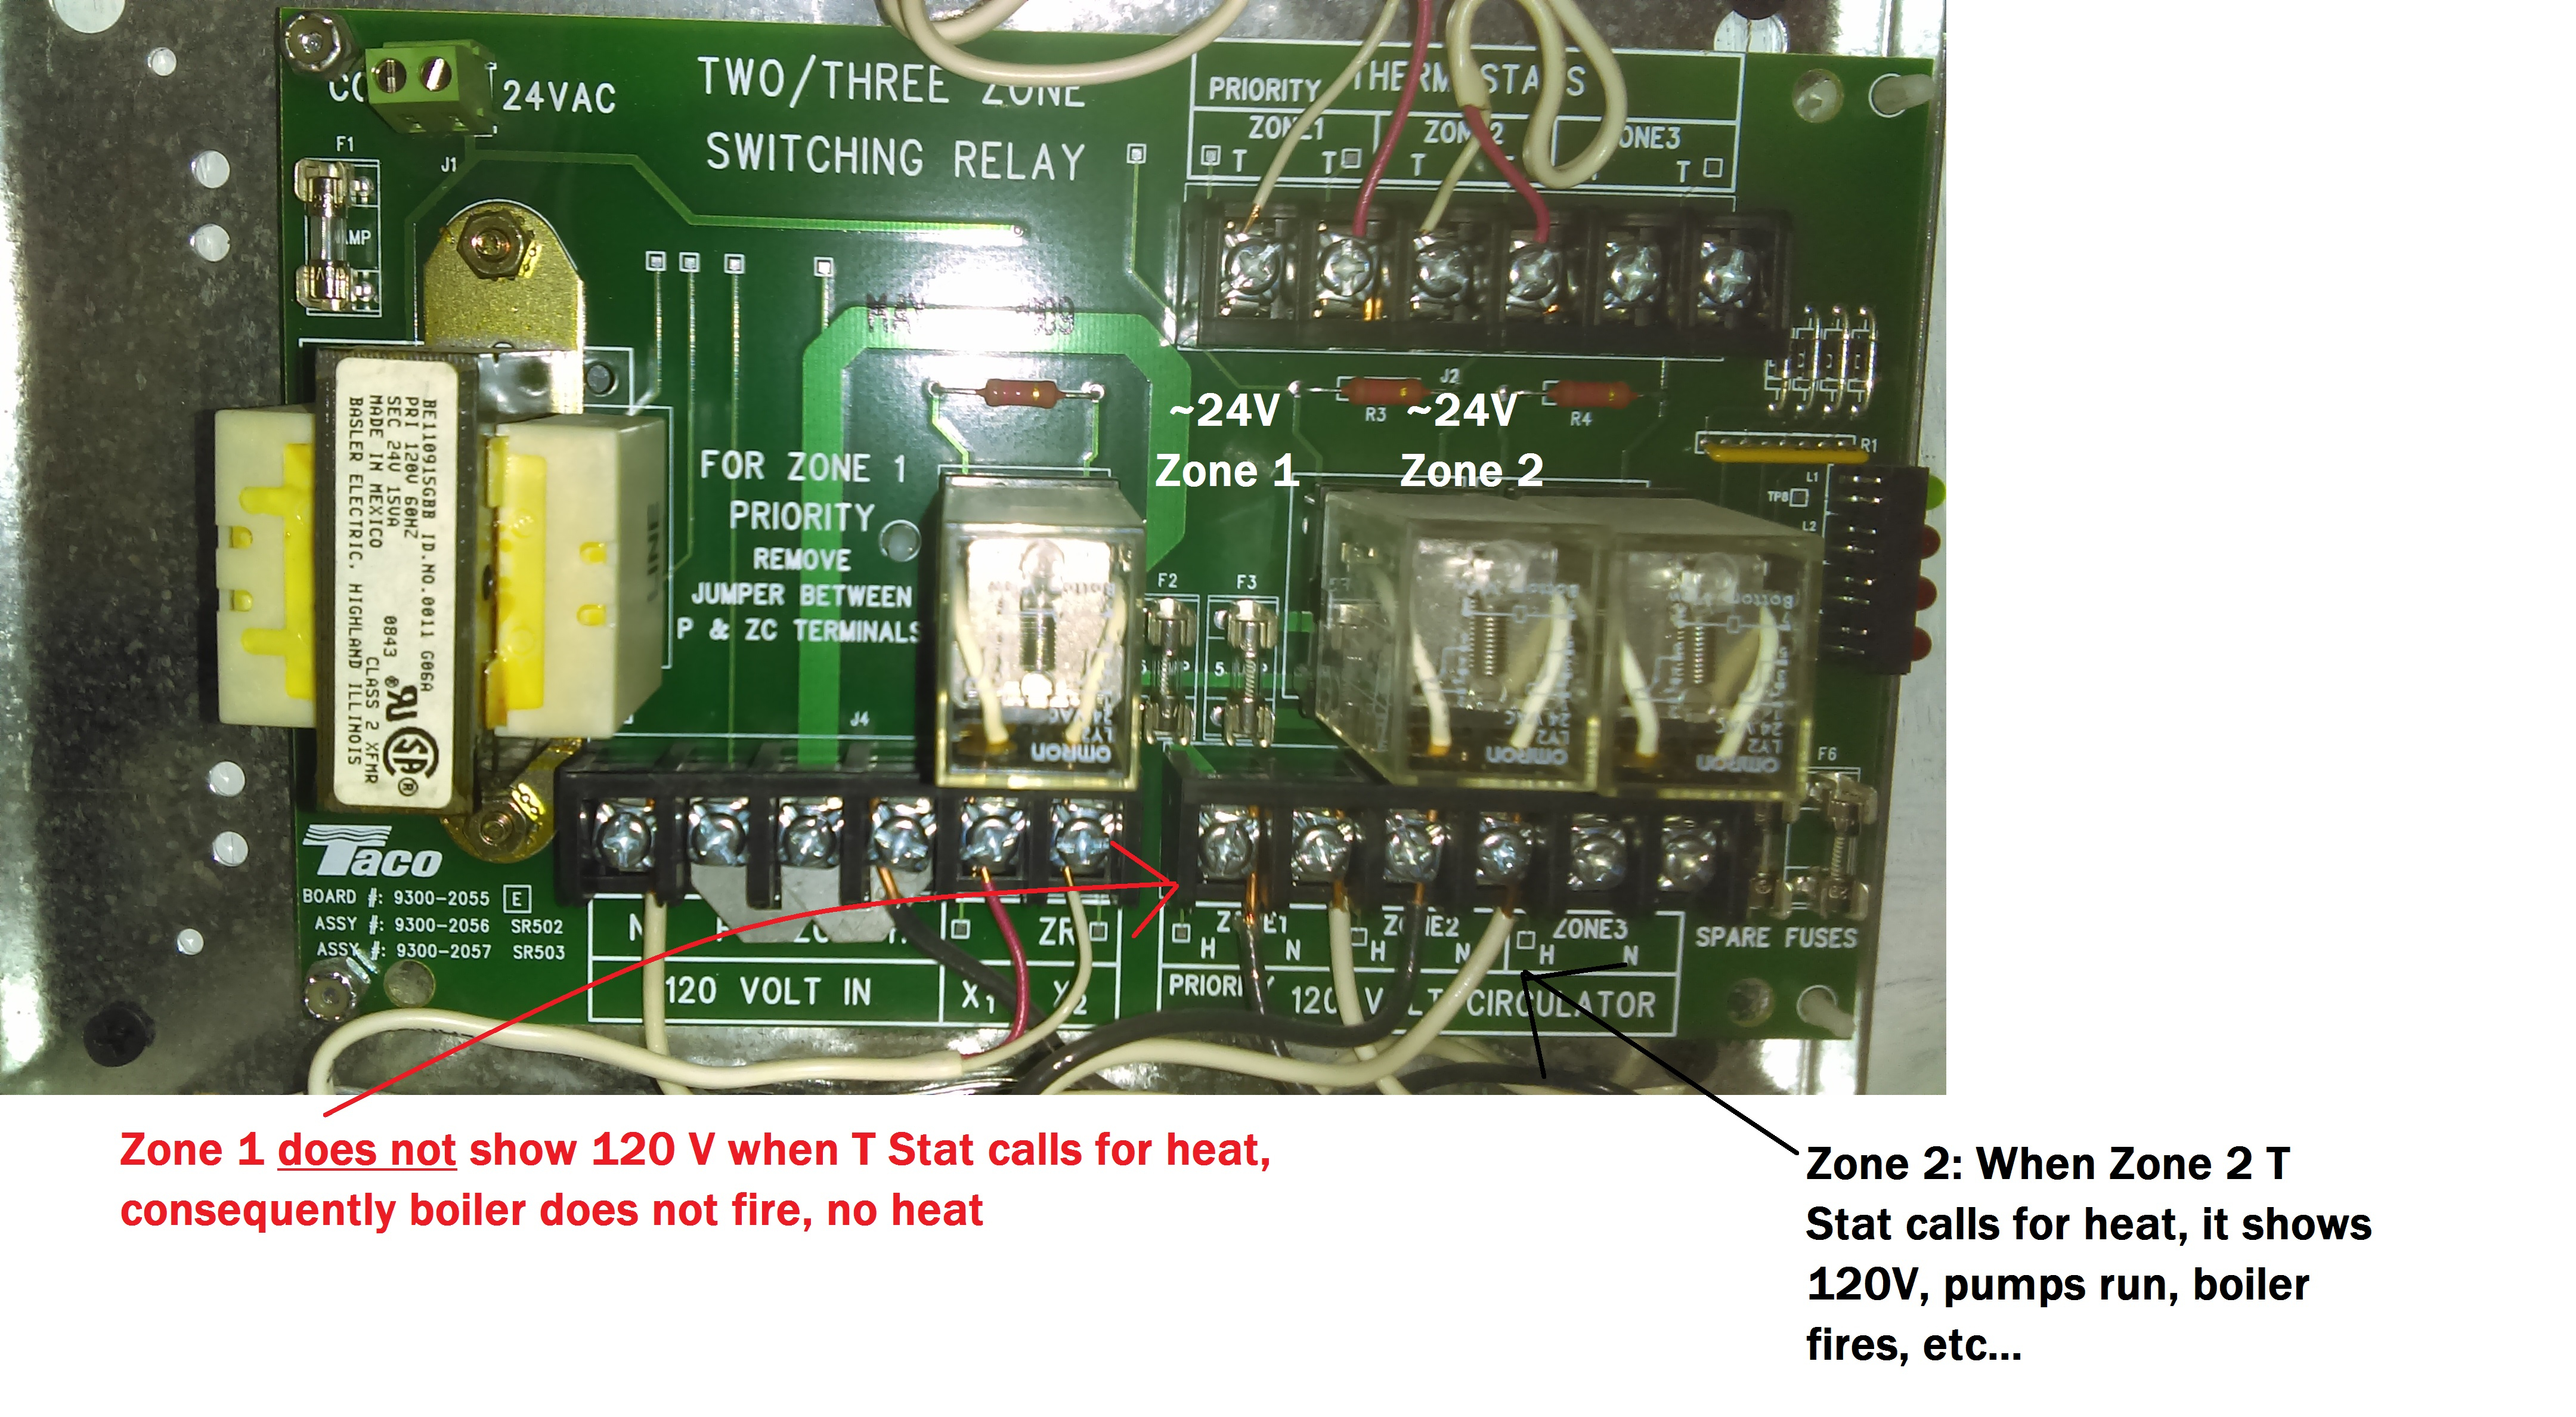 Taco Boiler Controls Wiring - The Manual Is For A Bajaj 2 Stroke for Wiring  Diagram SchematicsWiring Diagram Schematics